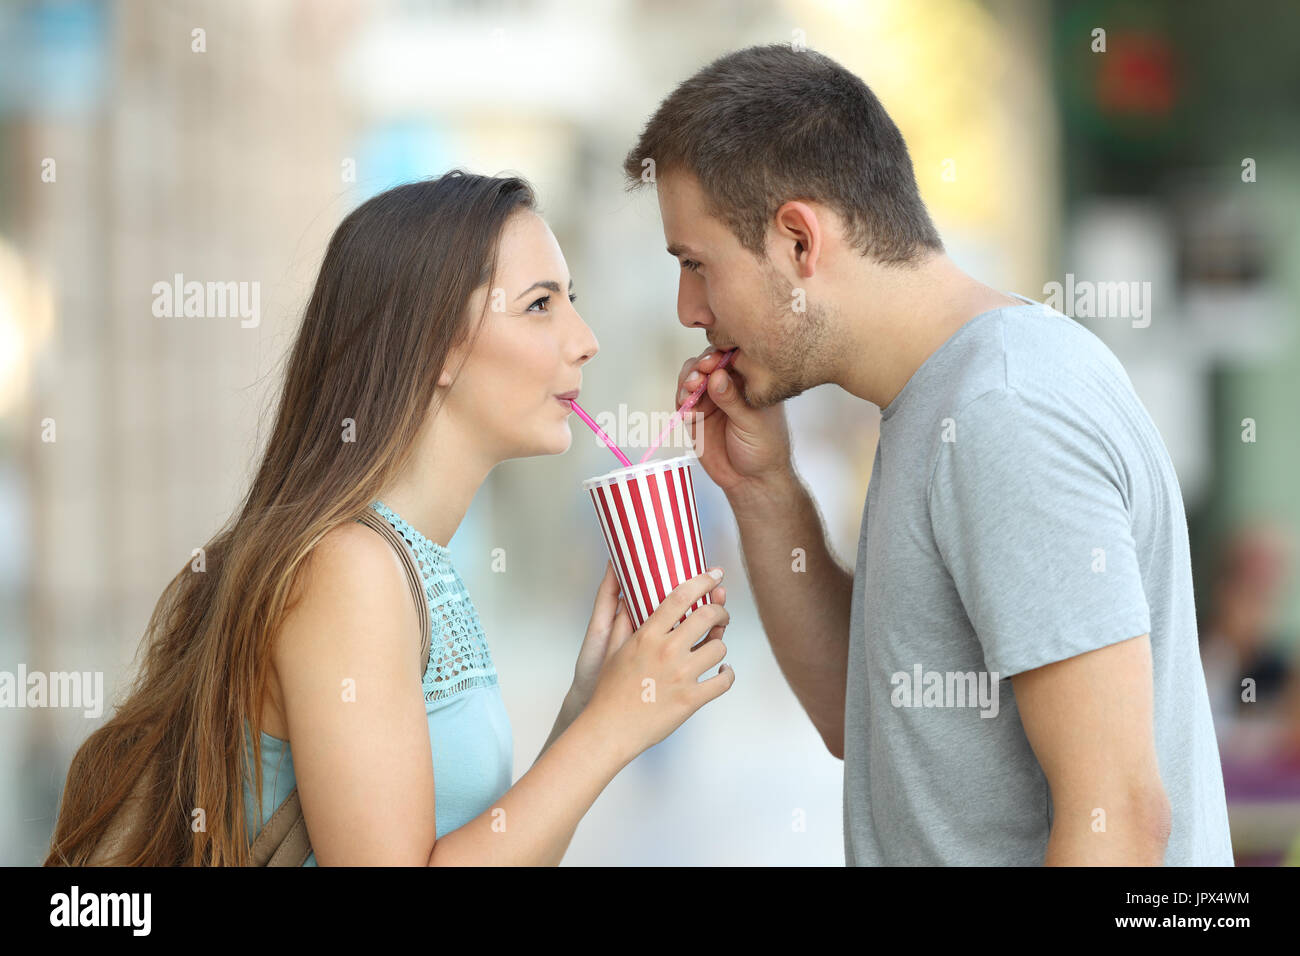 Side view portrait of a happy couple sharing a takeaway refreshment in the street Stock Photo